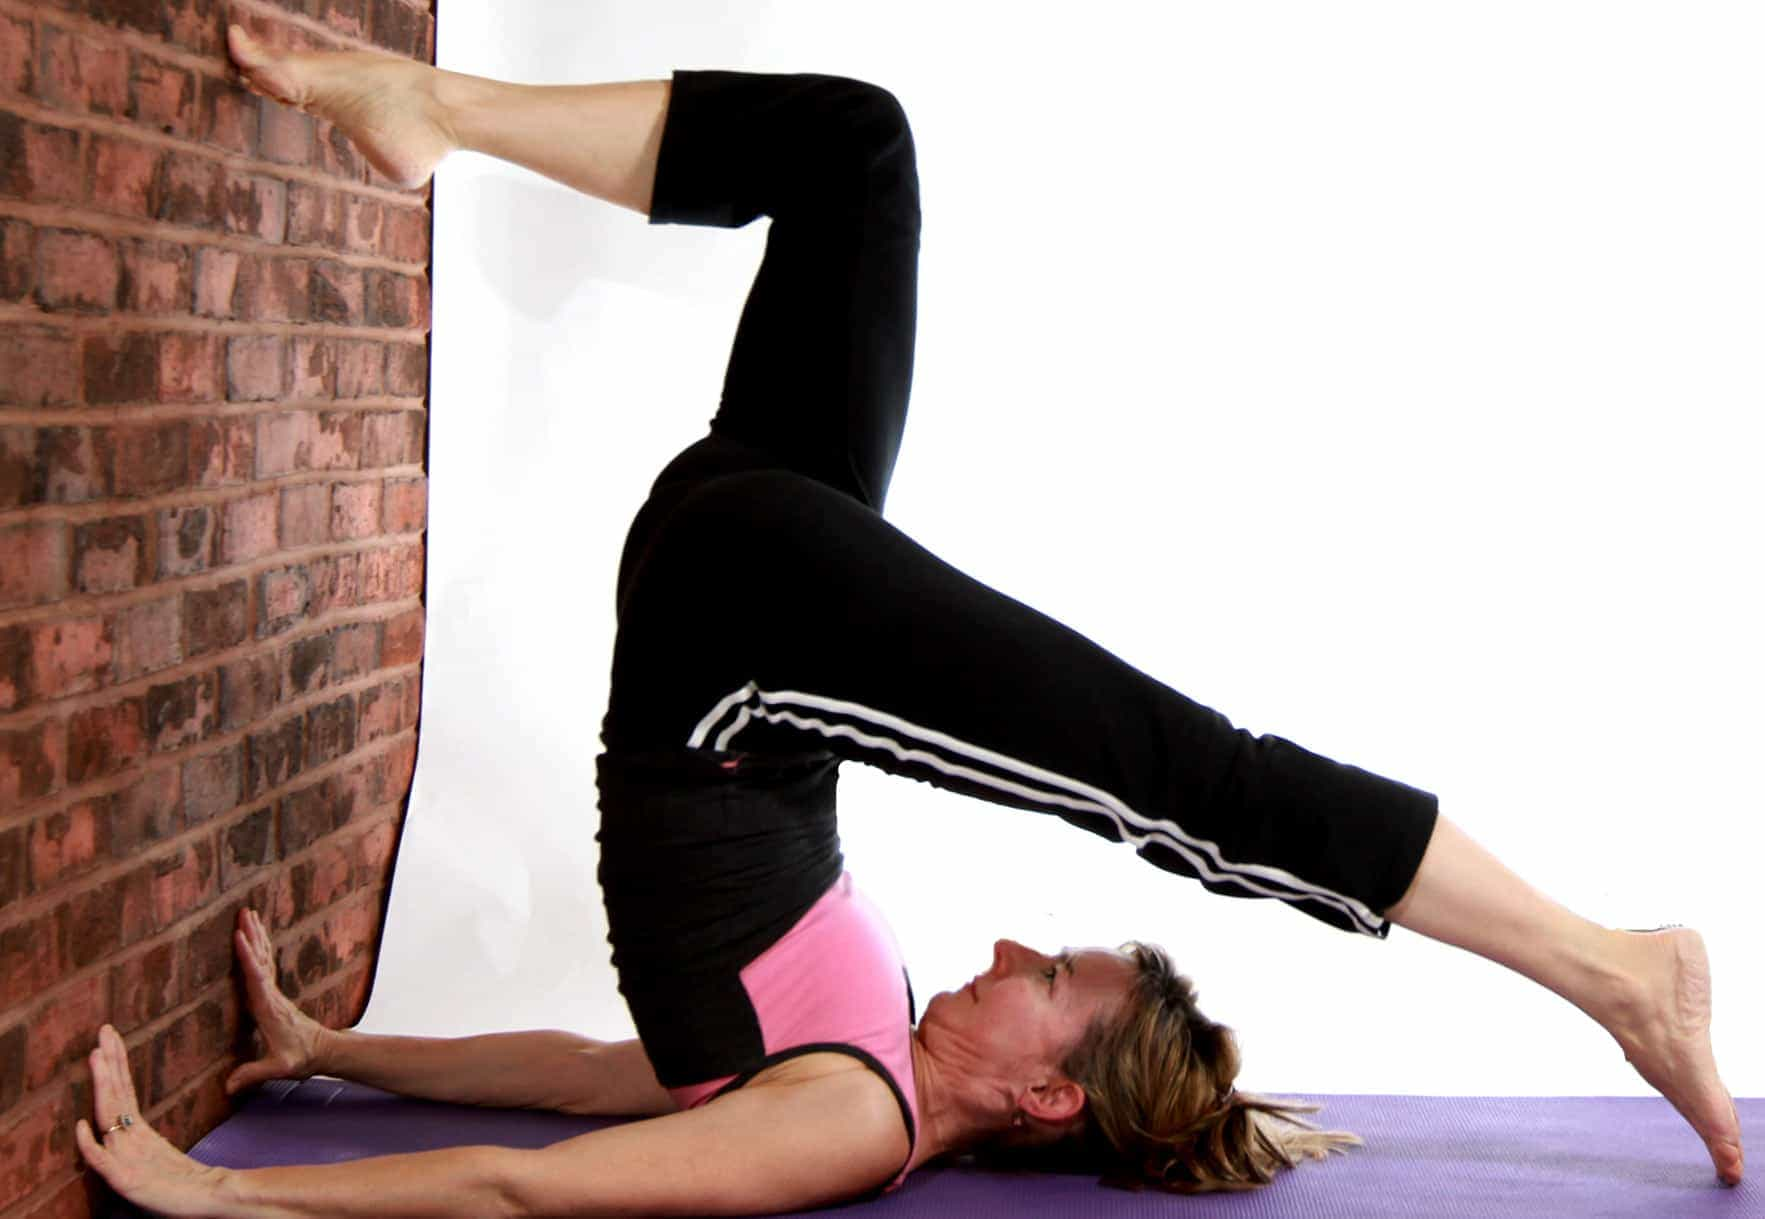 Yoga Poses At Work Against The Wall 2016 Todayz News